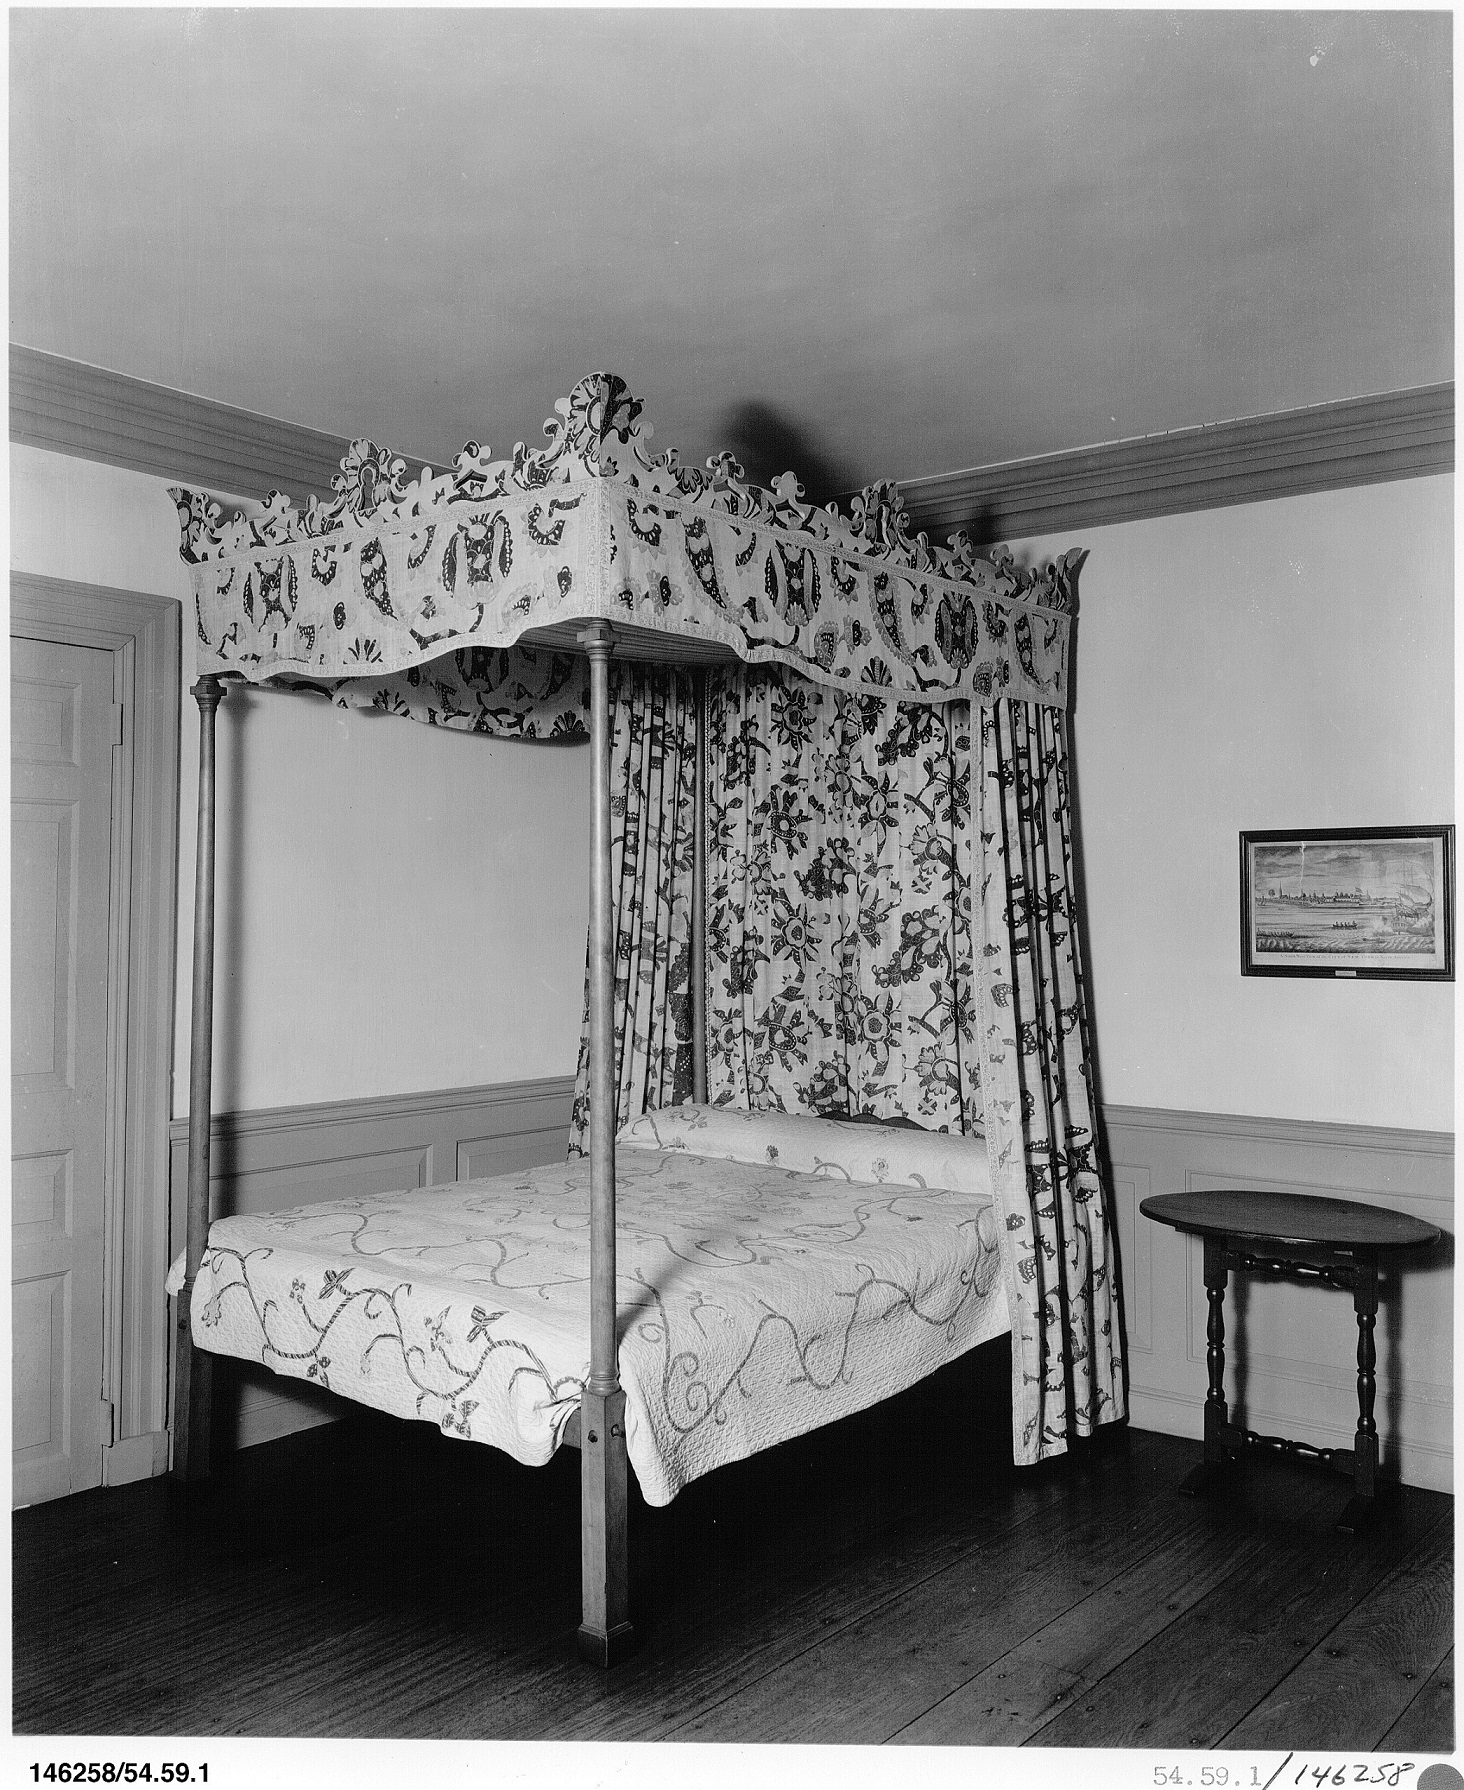 Bedstead with fabric-covered cornices, believed to have been made for the household of merchant Thomas Belden (1732-1782) and Abigail Porter (1737-1798), married in 1753, of Wethersfield, Connecticut. 49.91a-c, Courtesy of the Metropolitan Museum of Art, http://www.metmuseum.org/art/collection/search/439?sortBy=Relevance&ft=belden+porter+bed+cornice&offset=0&rpp=20&pos=1